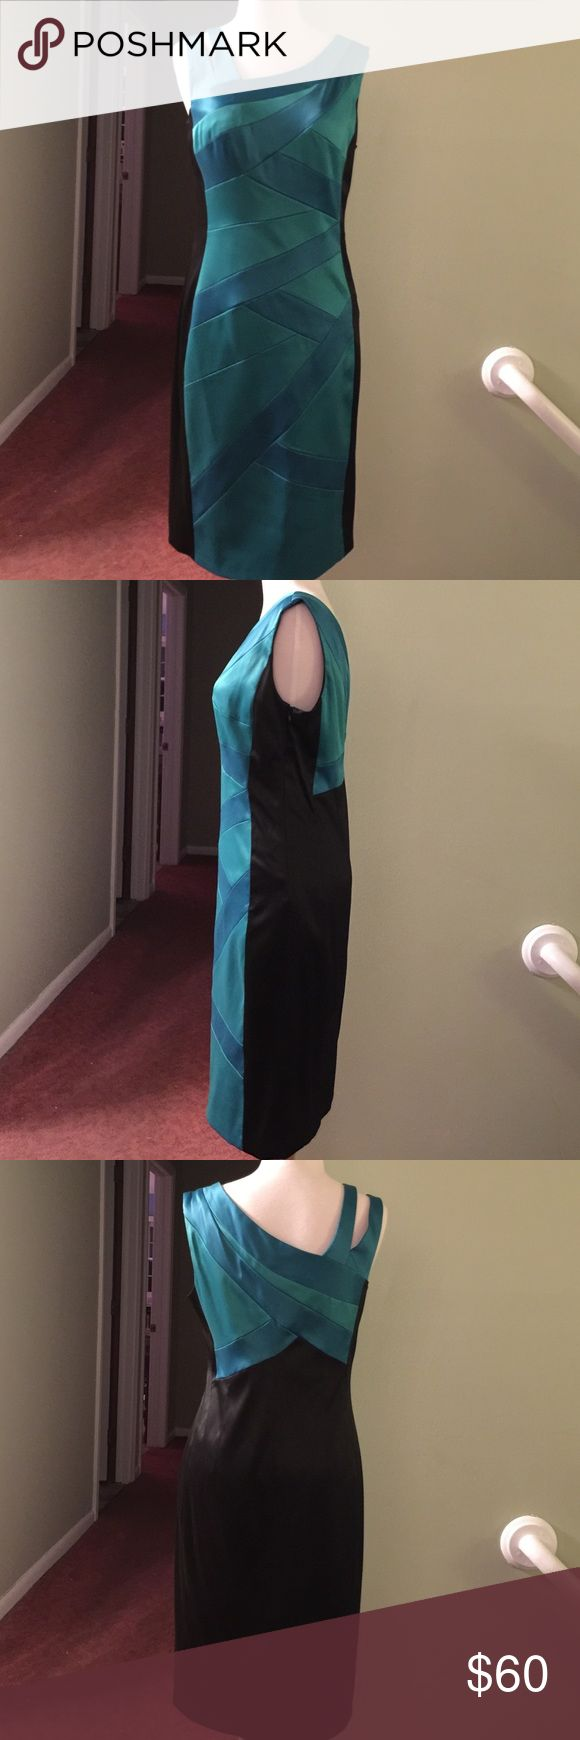 Gorgeous teal formal dress Unique straps / worn once for wedding / black sides add slimming effect / knee length / vibrant colors and excellent condition / zips on left side / longing 100% polyester / she'll 95% polyester 5 % spandex / machine wash cold inside out / gentle cycle / cool iron/ bought at Macy's sangria Dresses Midi